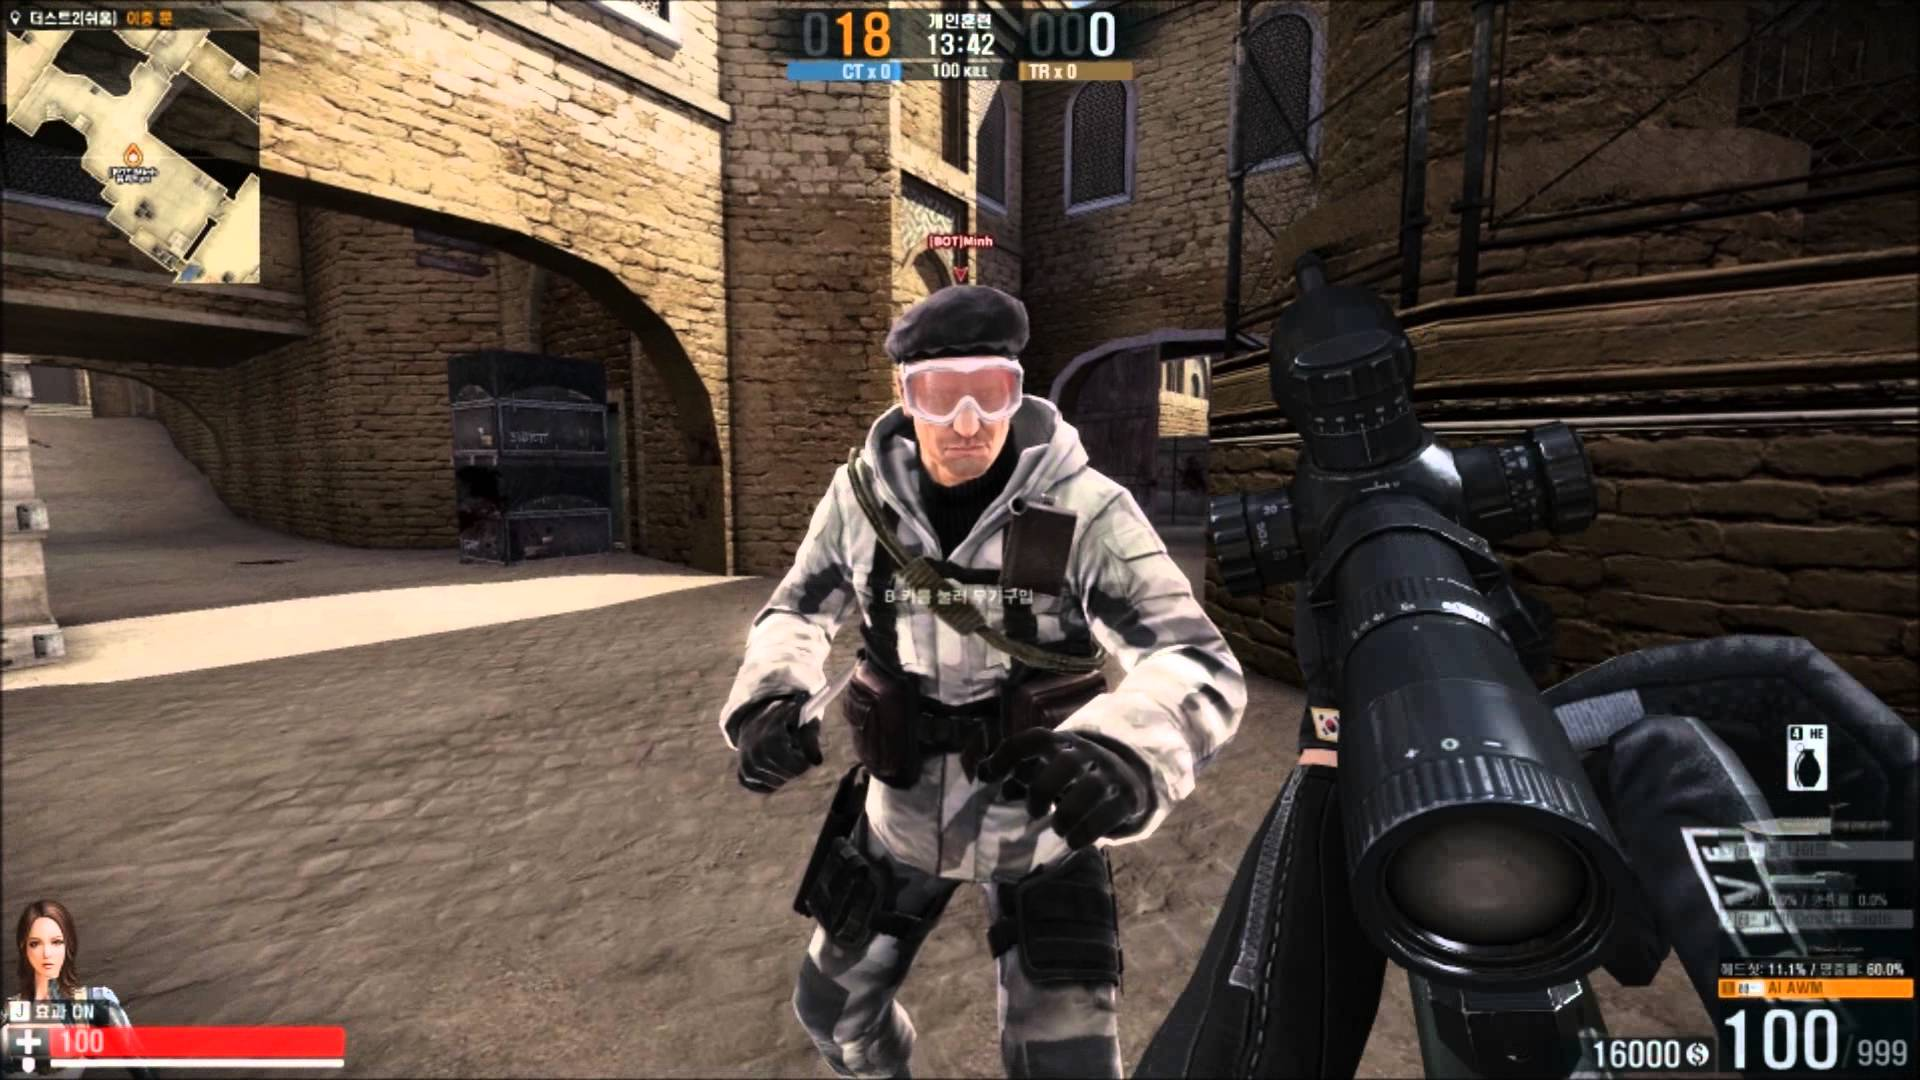 Counter strike free online csgo console closes